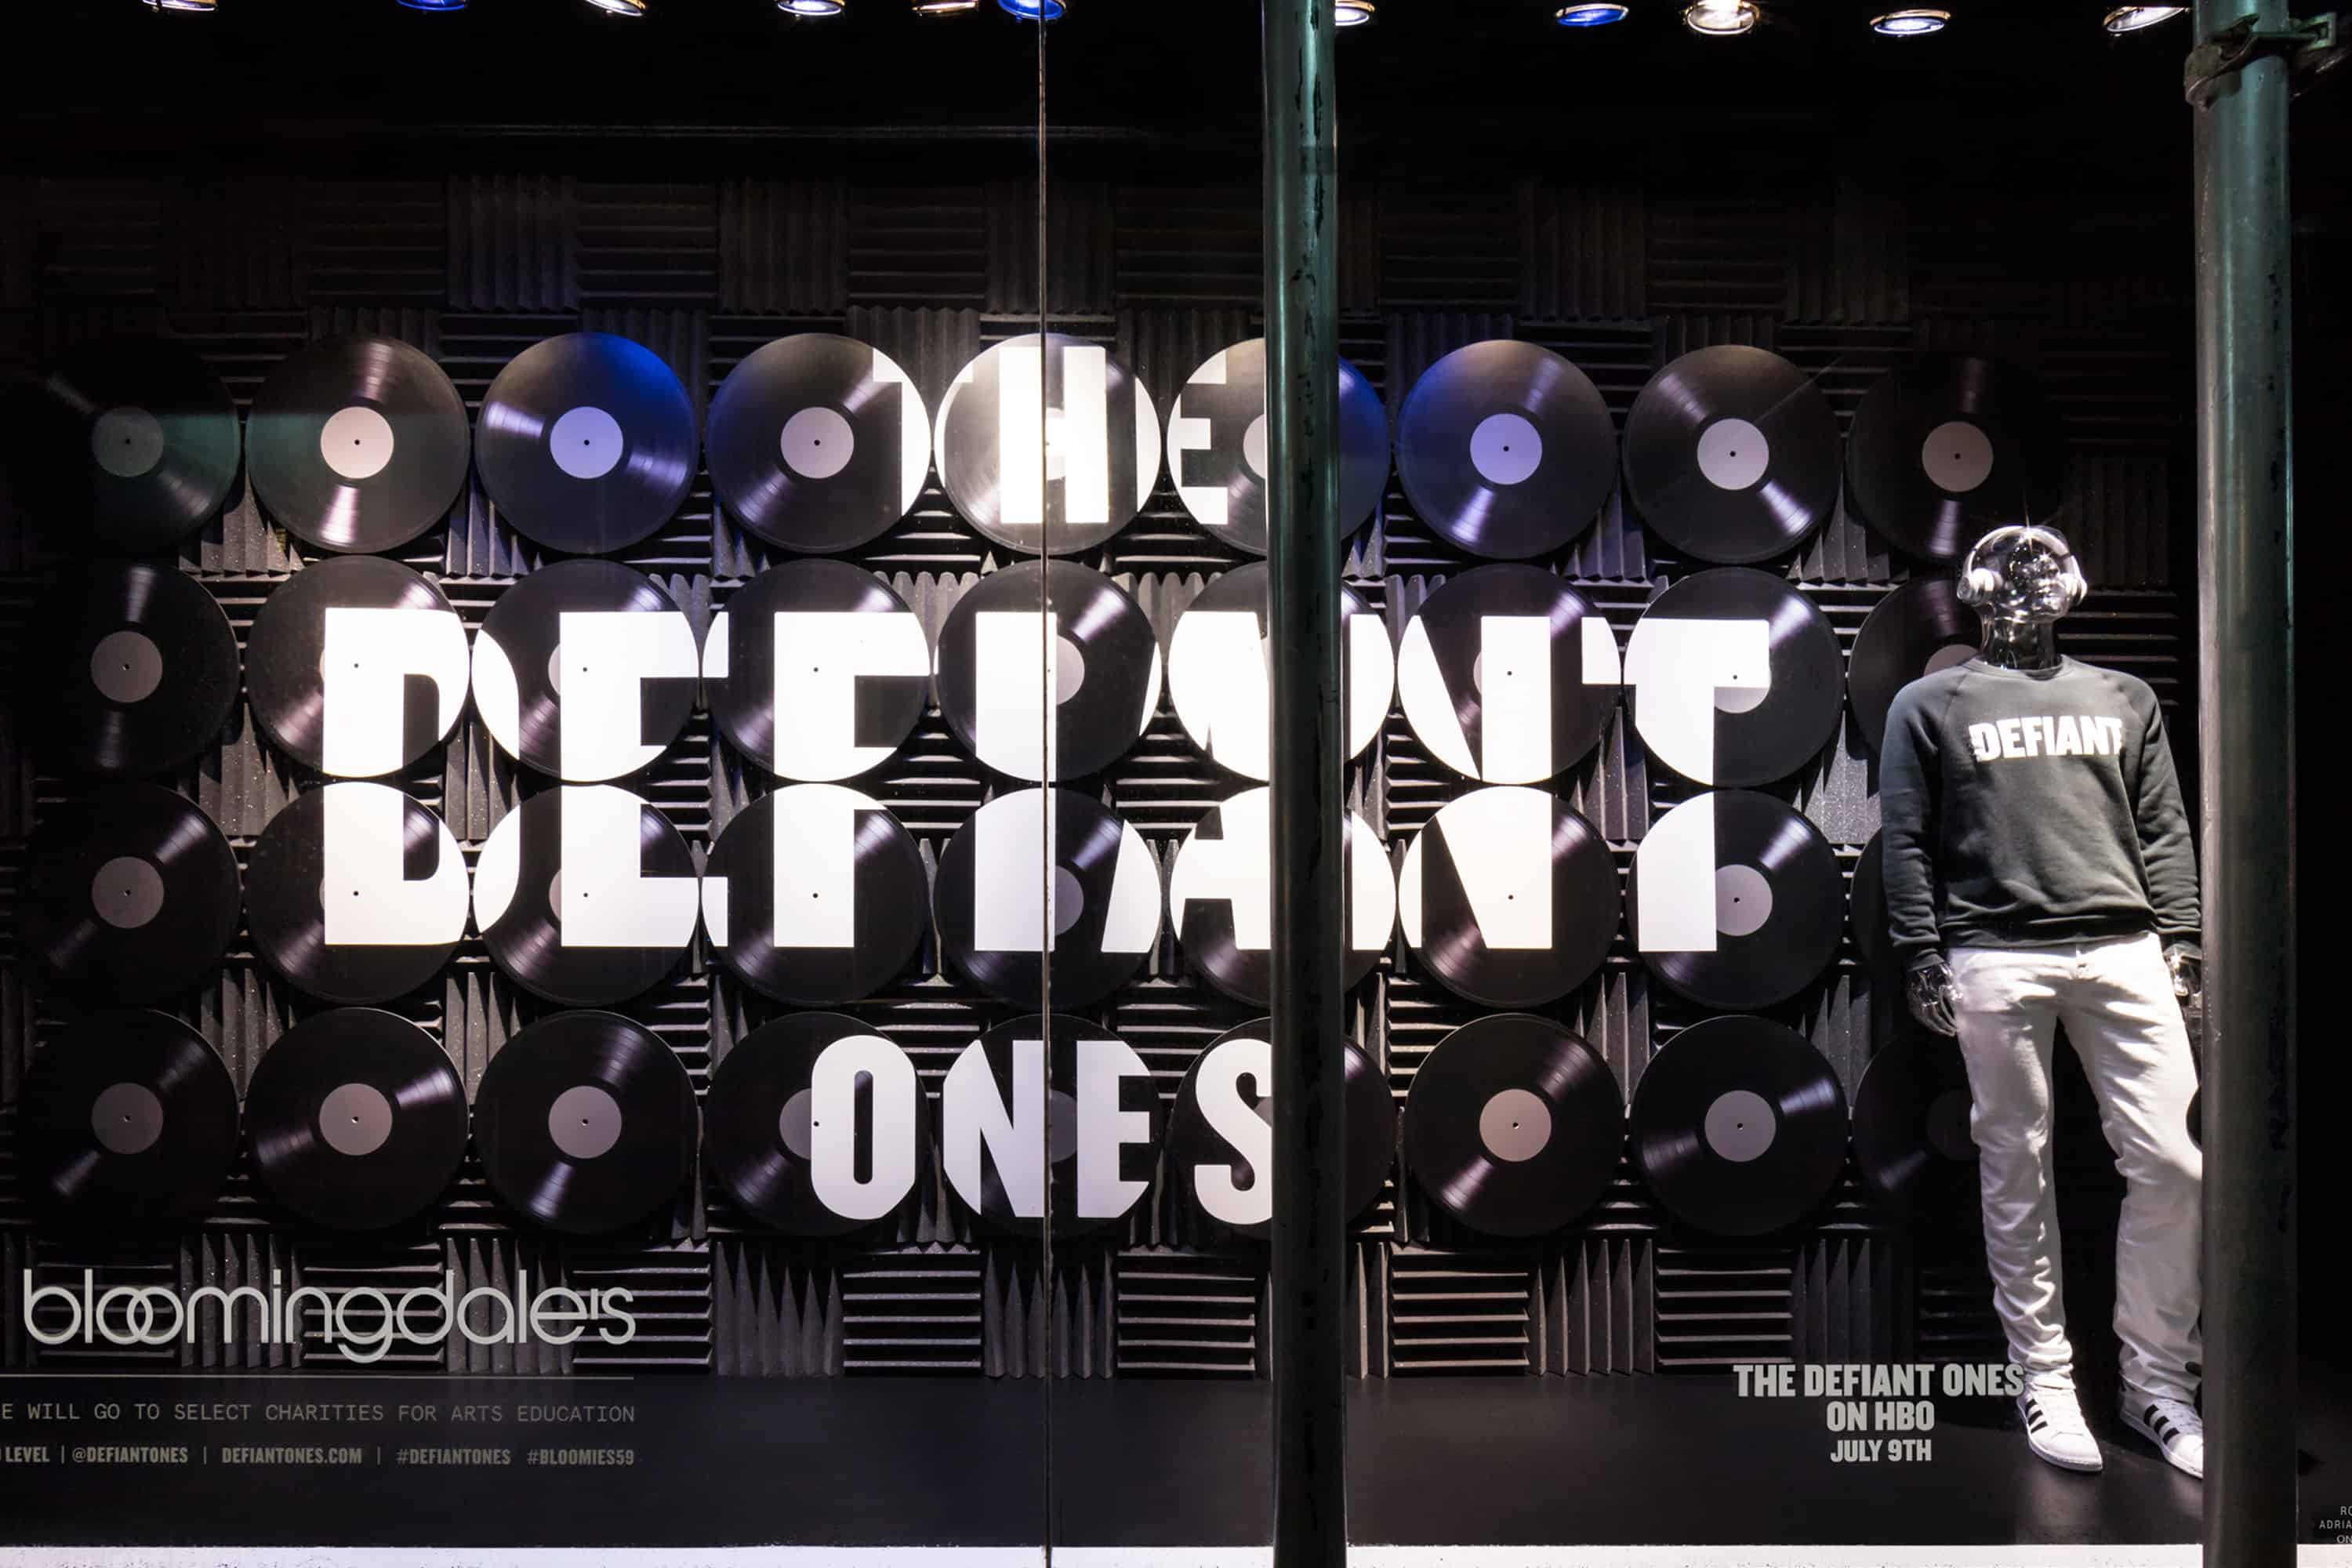 Bloomingdales 59th Street Window Displaying HBO THE DEFIANT ONES Merchandise